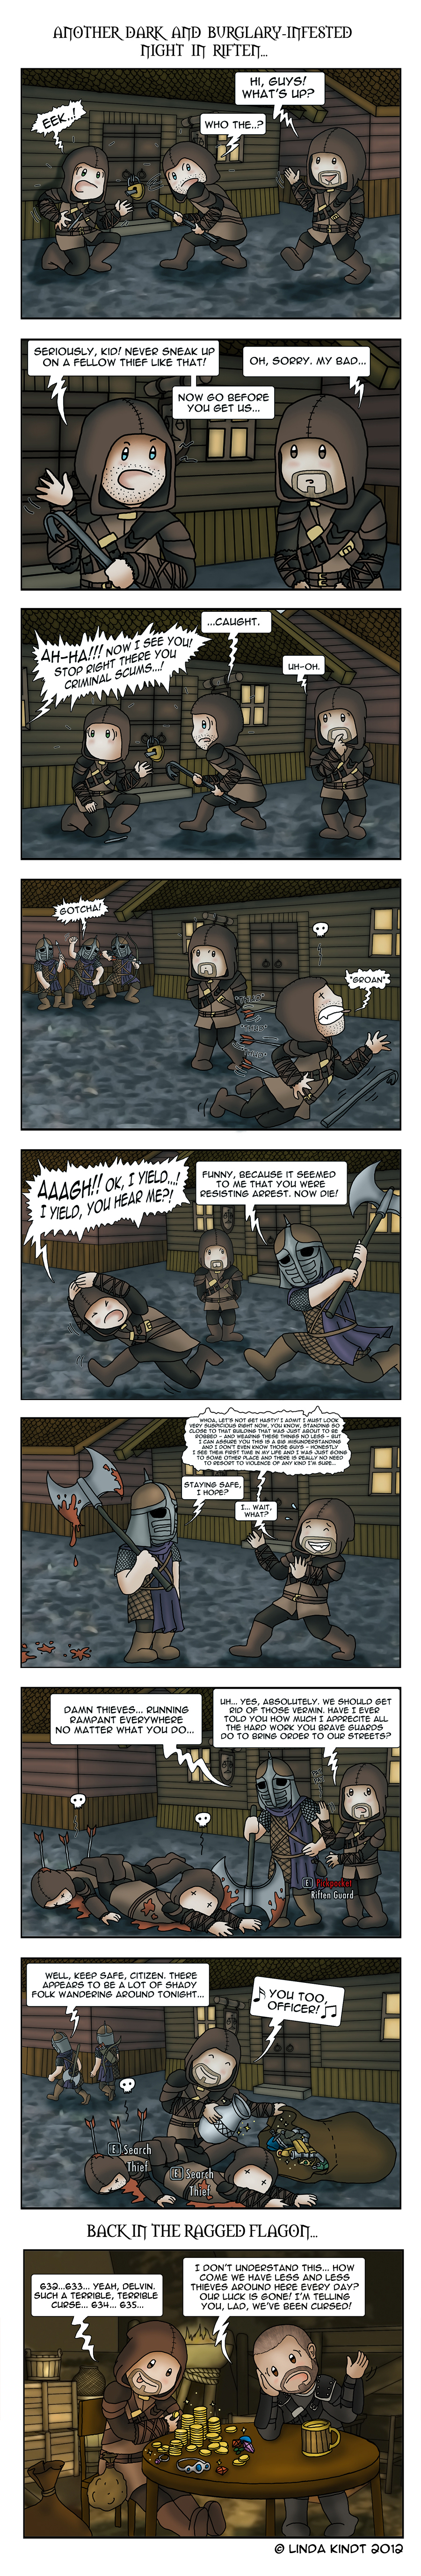 Skyrim: No Honor Among Thieves by Isriana on DeviantArt